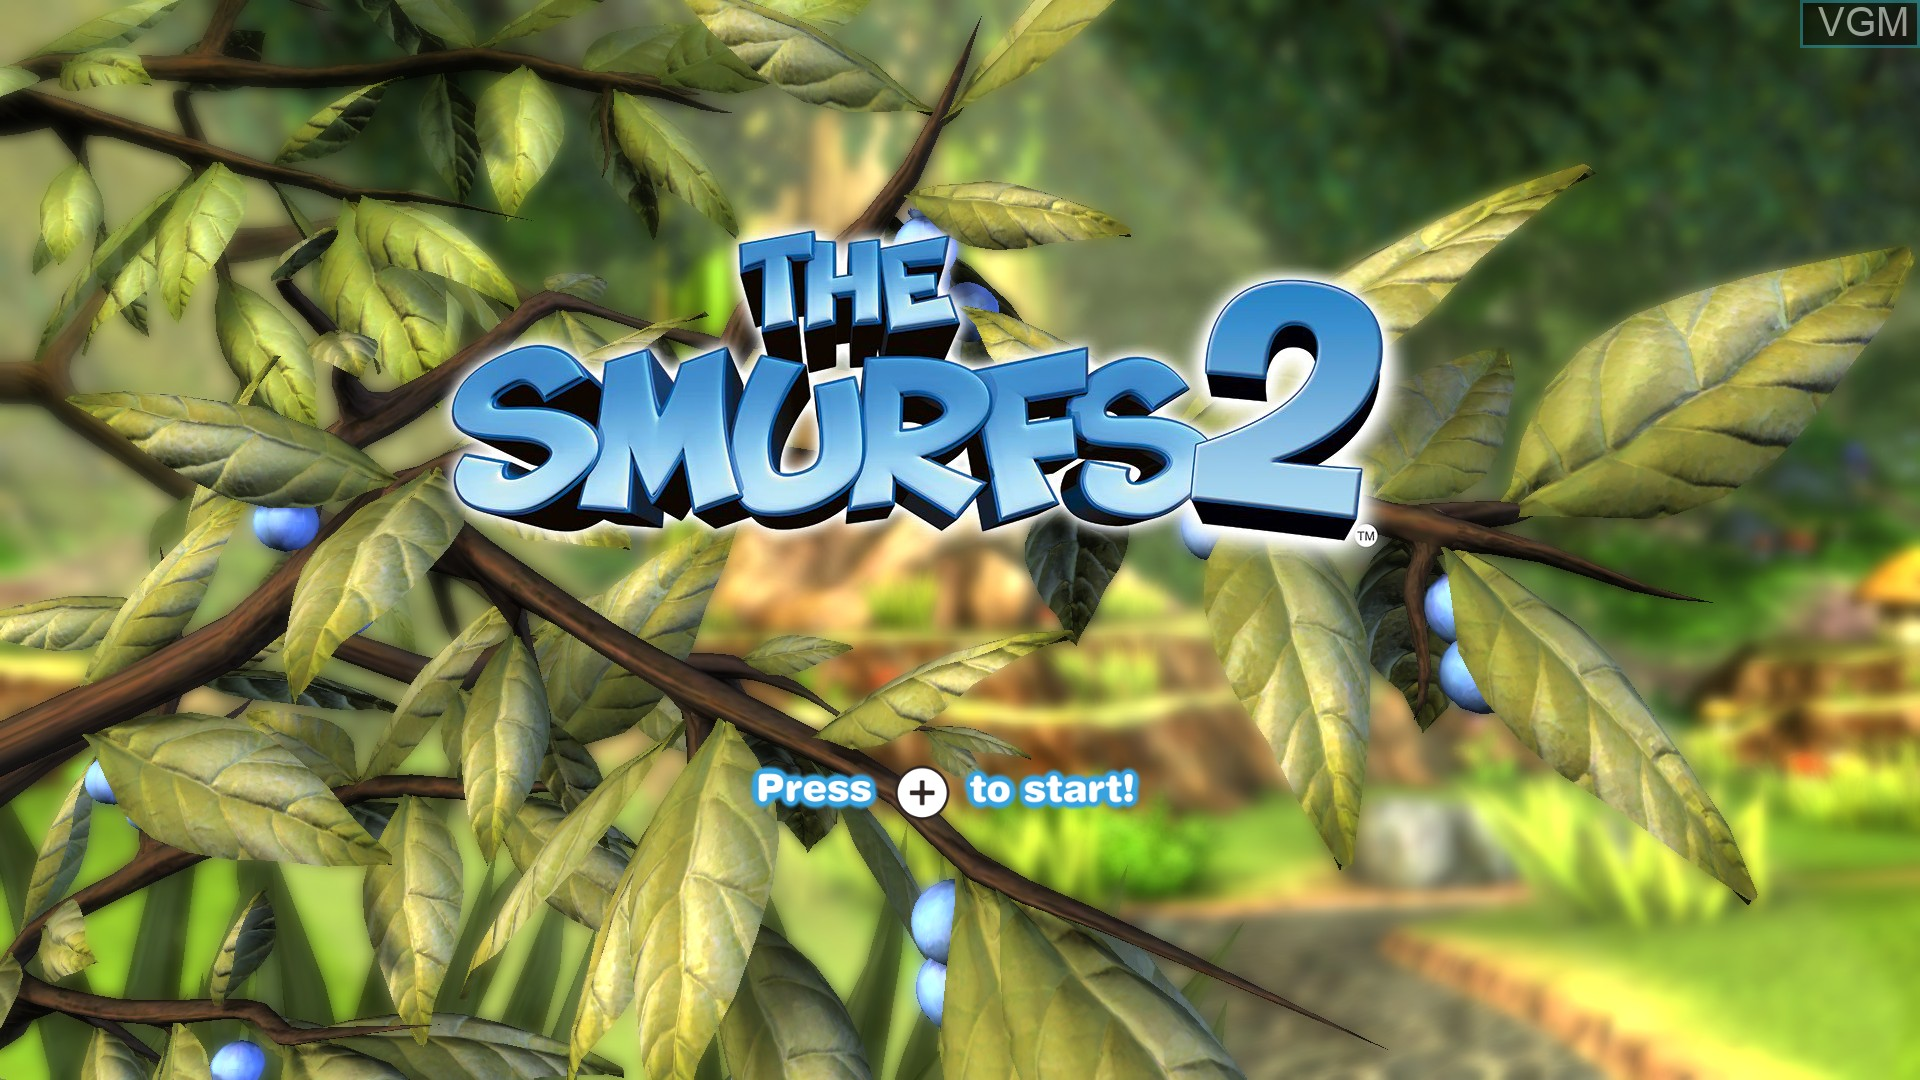 Title screen of the game Smurfs 2, The on Nintendo Wii U